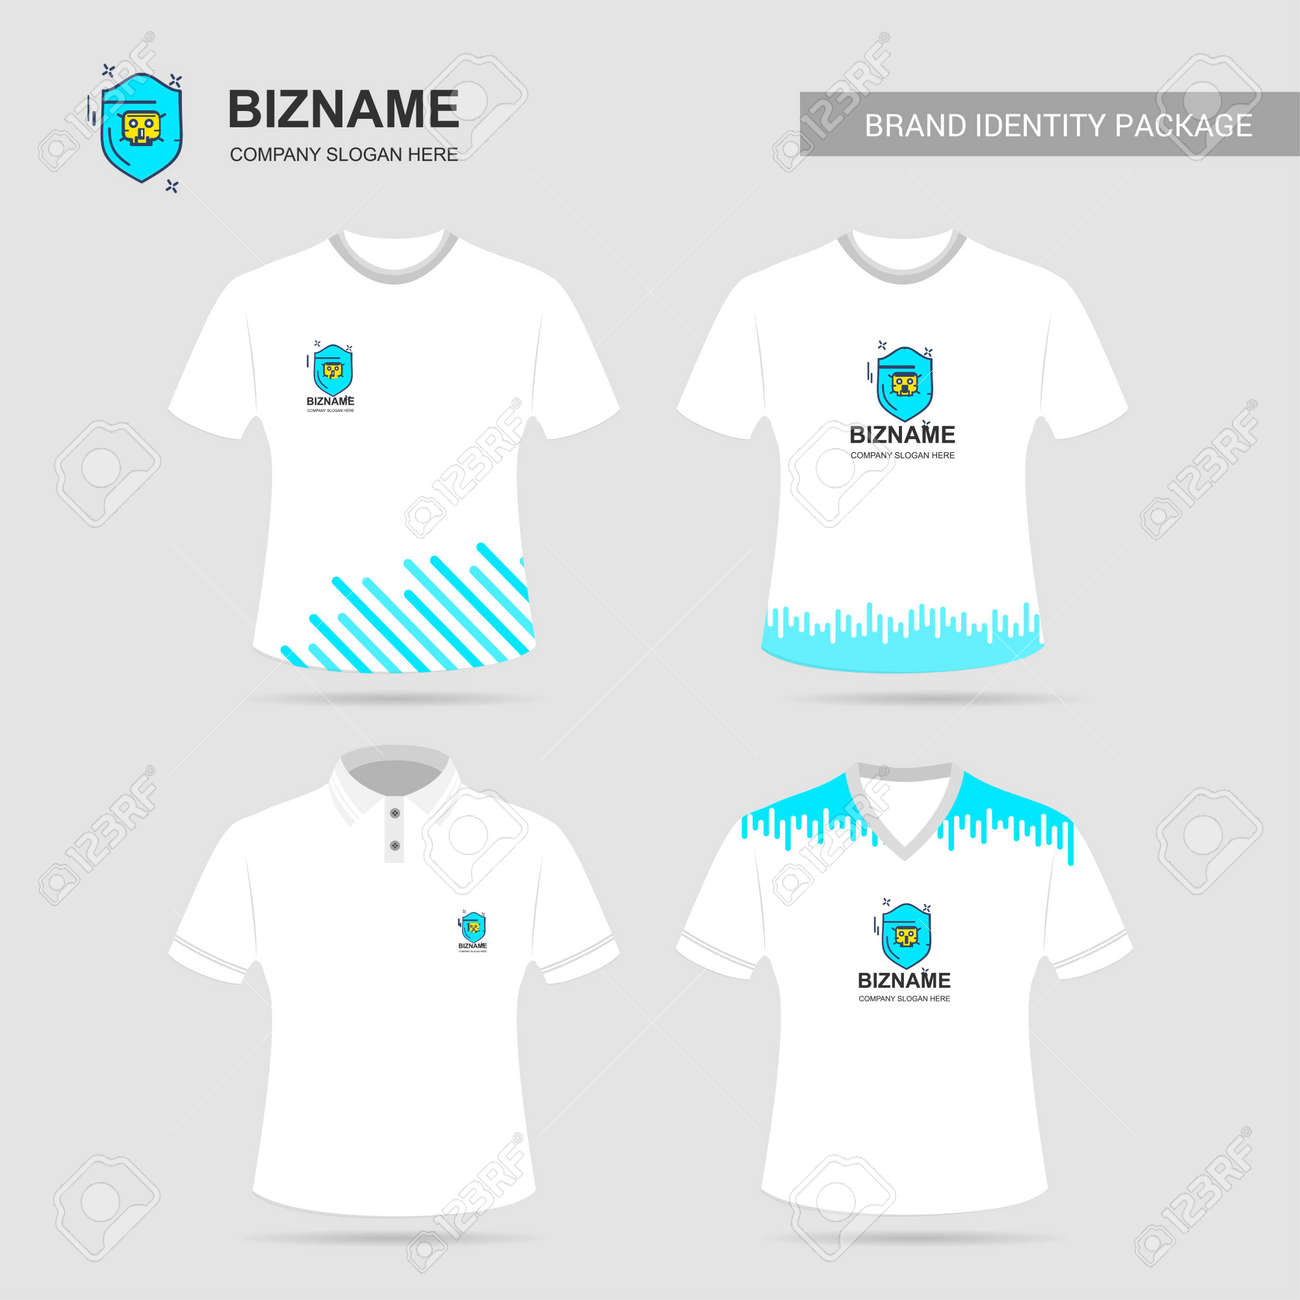 Company Design T Shirt With Logo And Design For Web Design Royalty Free Cliparts Vectors And Stock Illustration Image 104184076